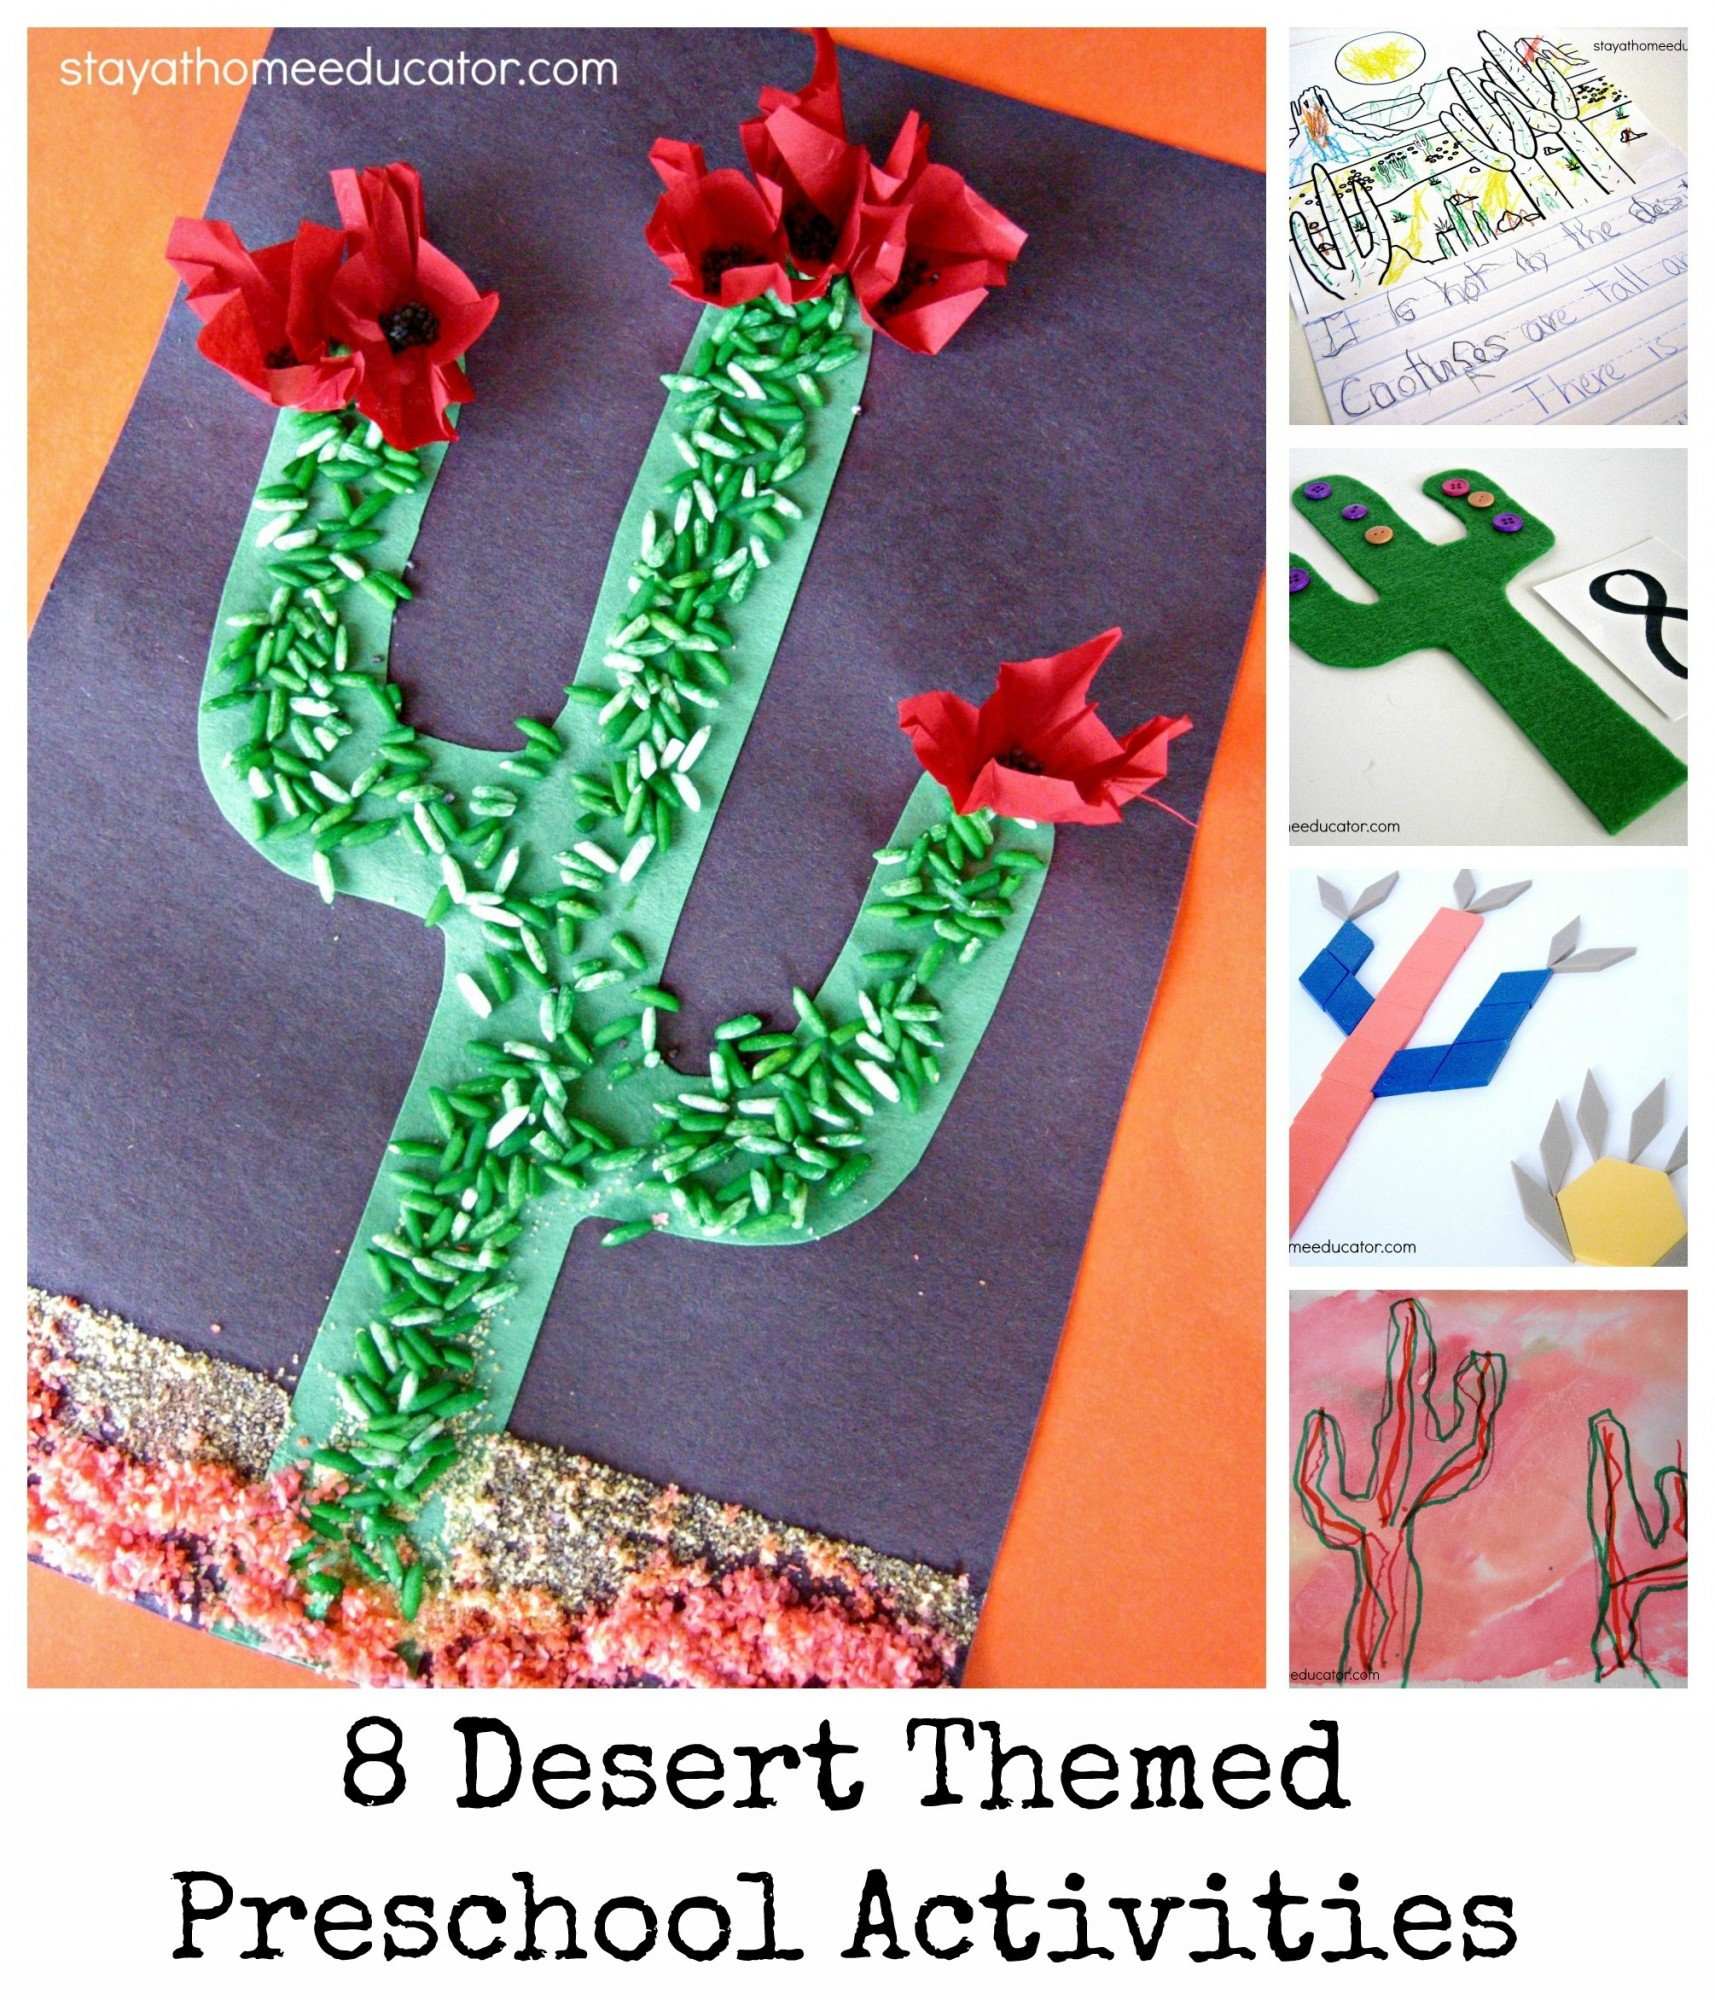 Eight Desert Theme Preschool Activities